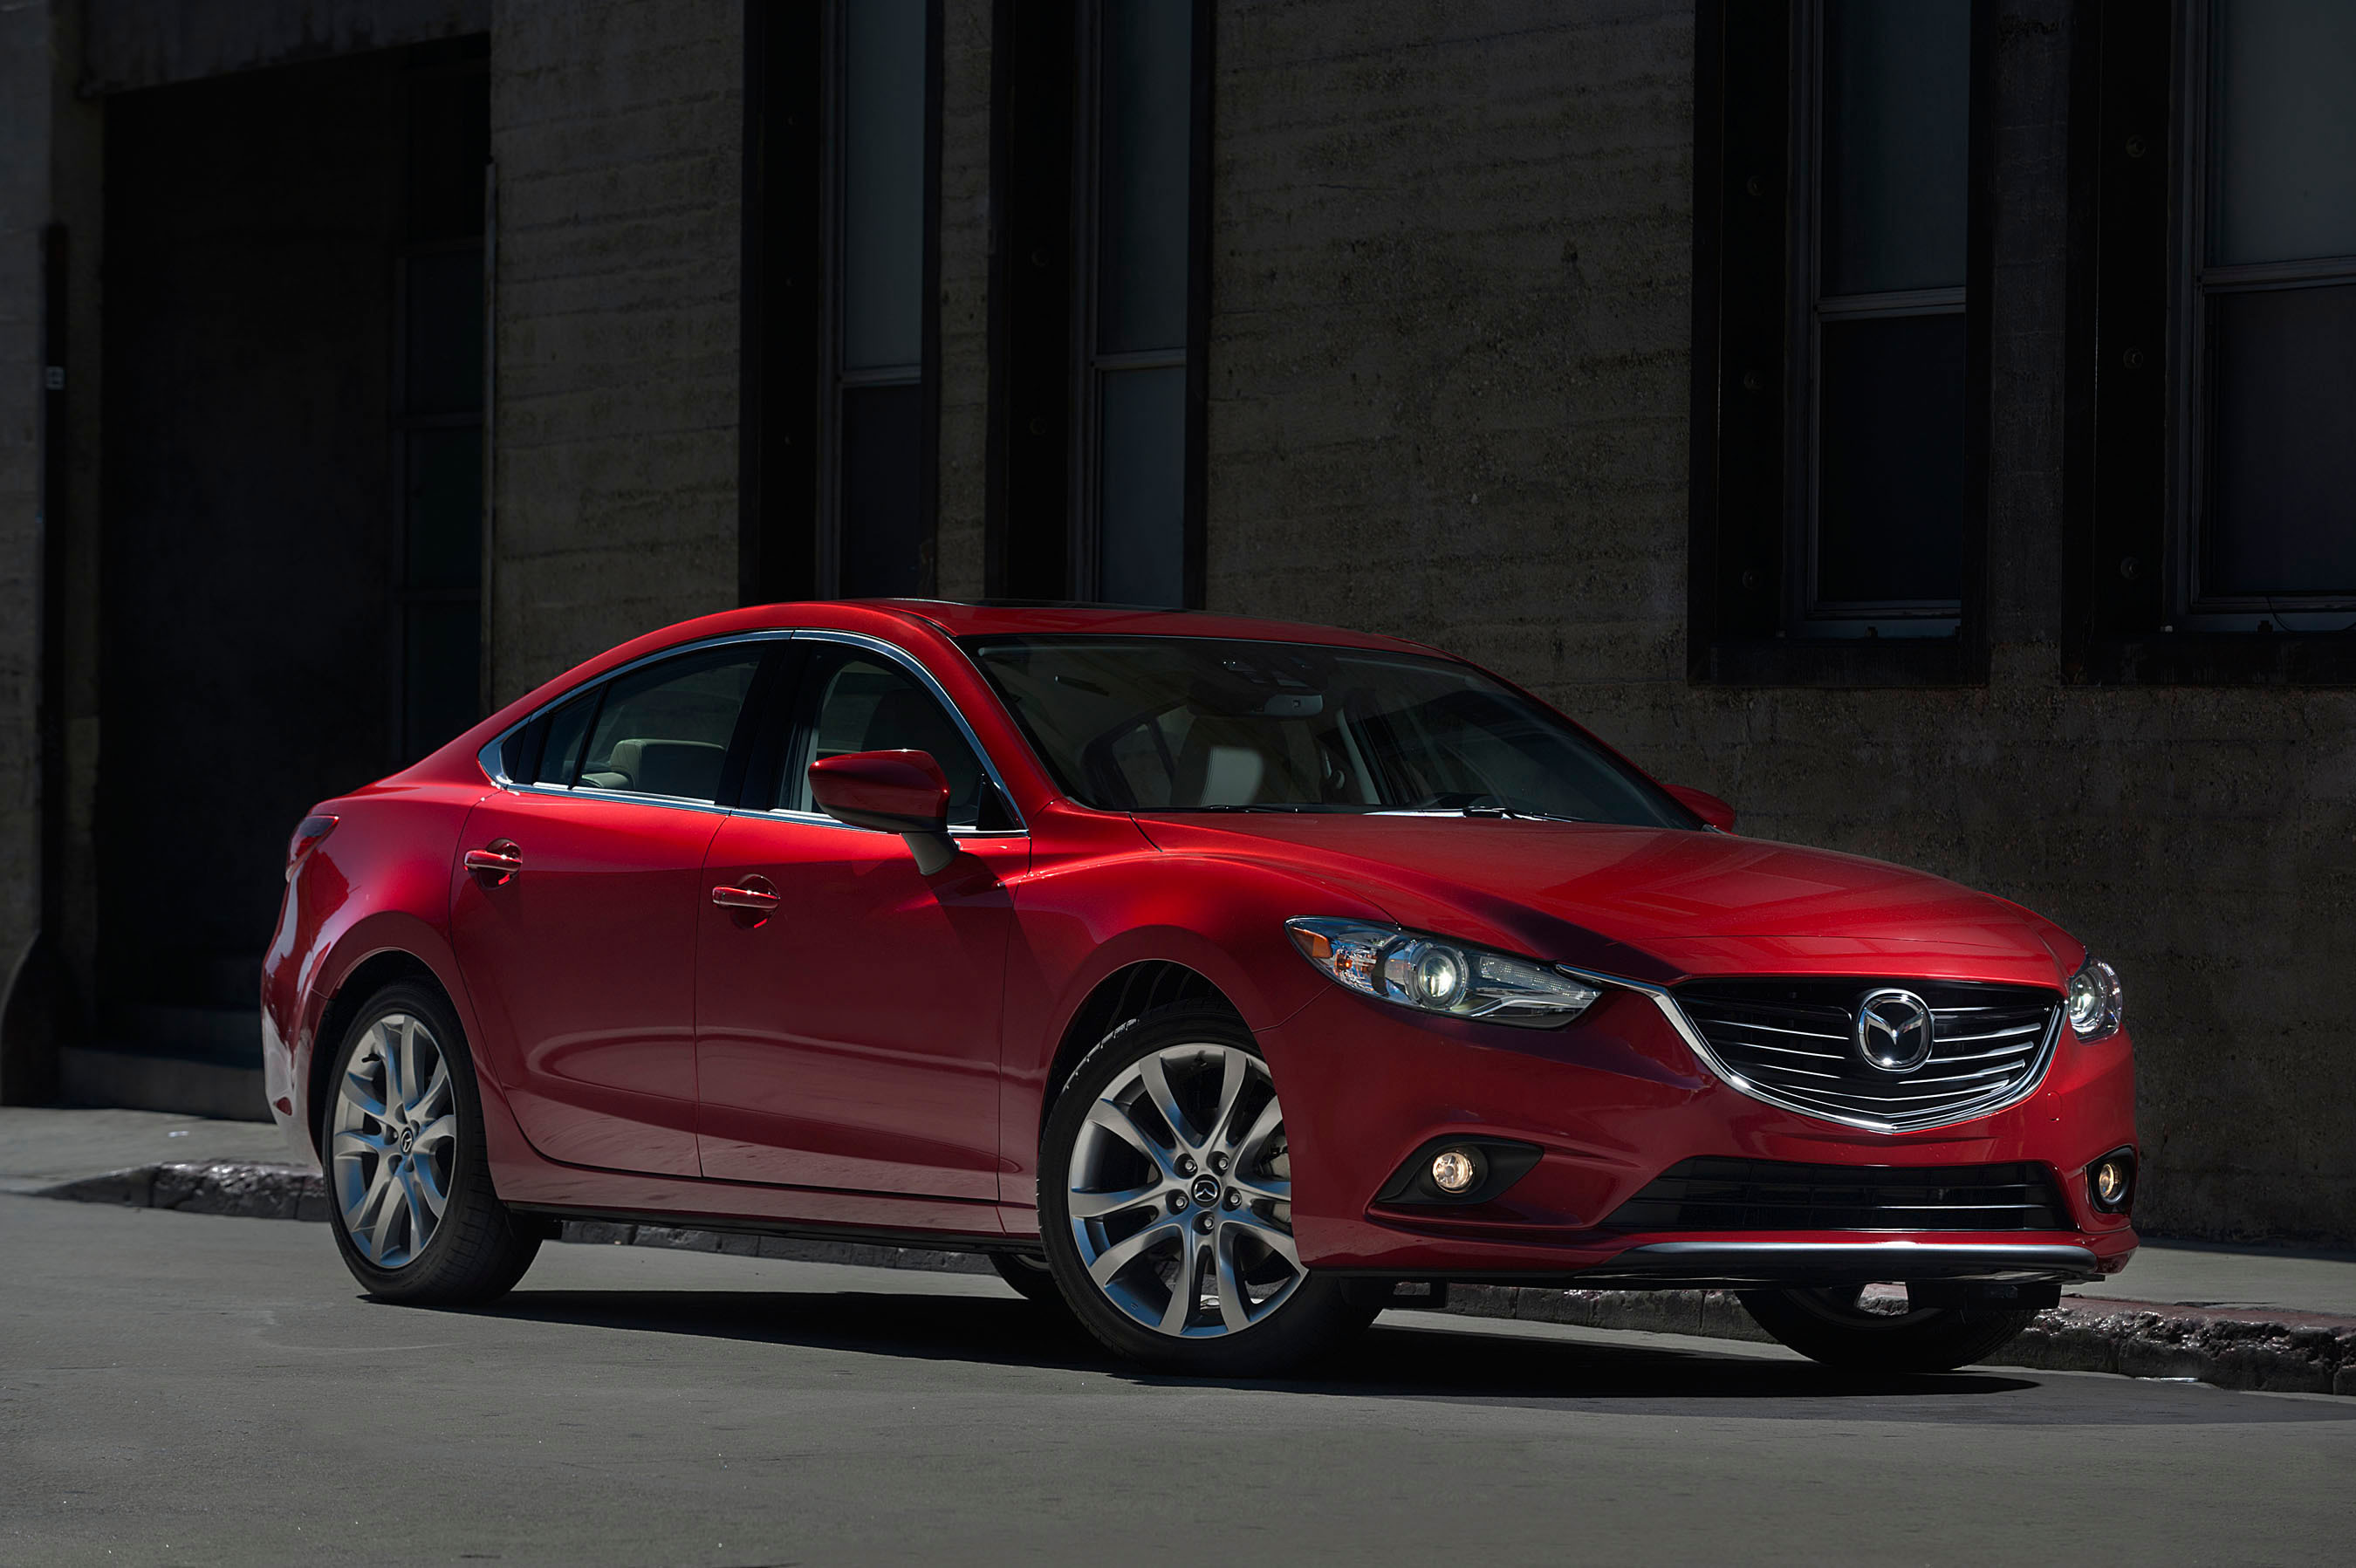 2014 mazda 6 first japanese clean diesel car to hit the usa market. Black Bedroom Furniture Sets. Home Design Ideas